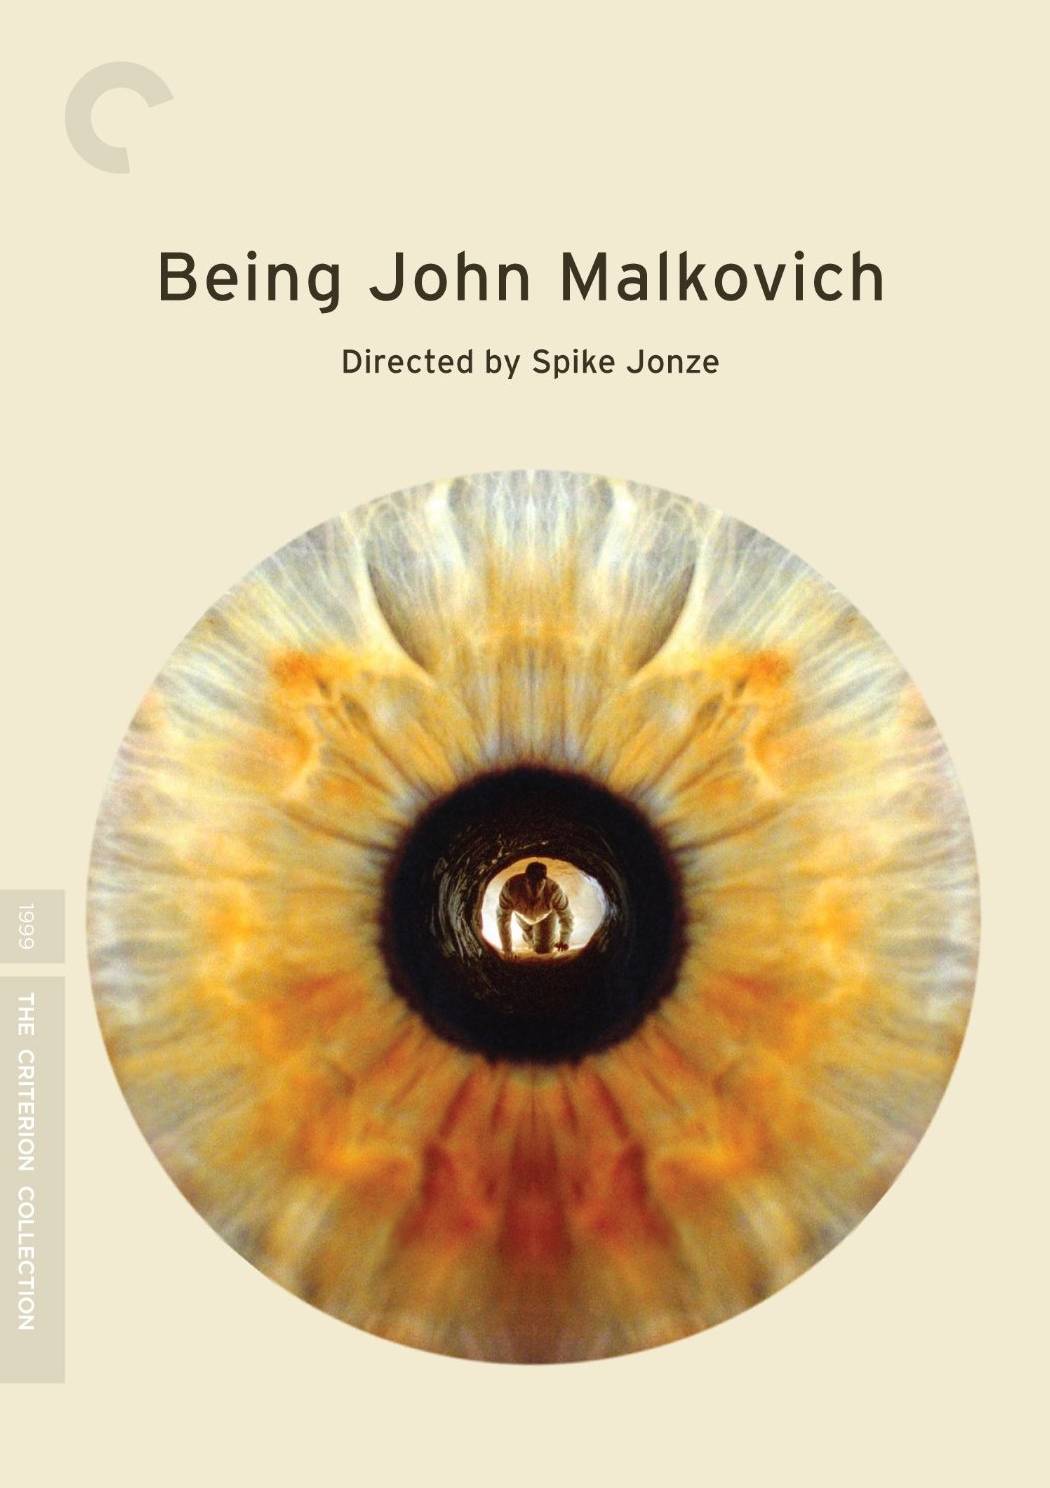 Essay on being john malkovich